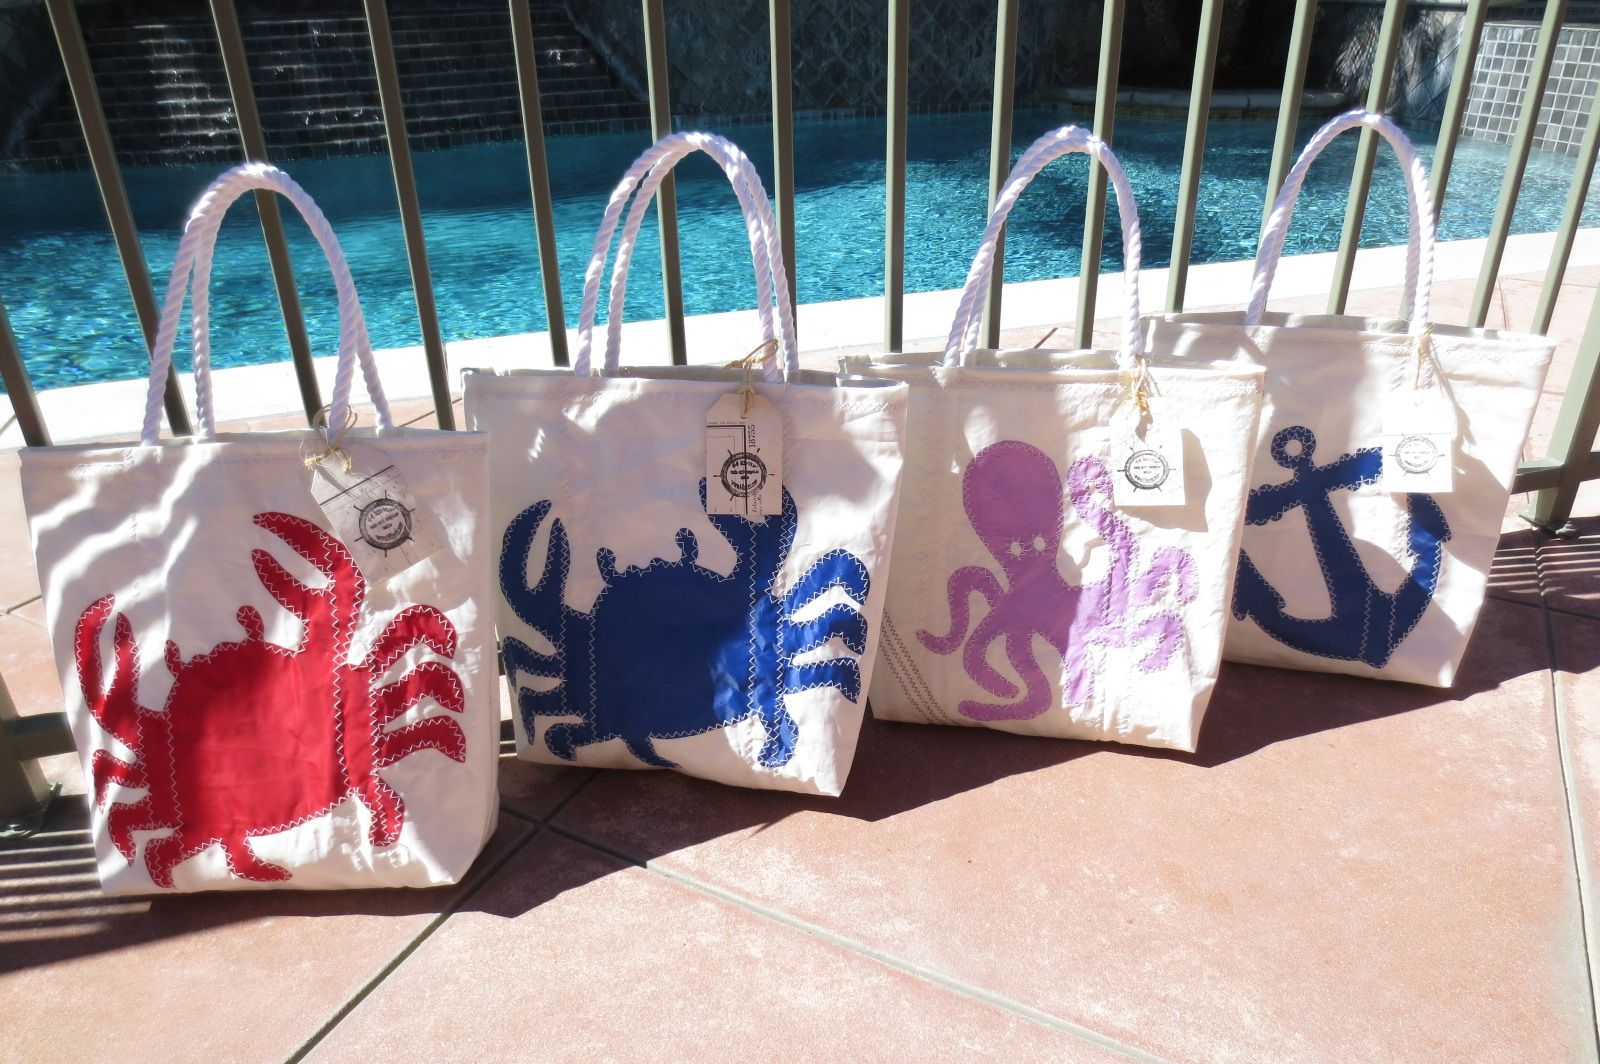 44 Knots Recycled Sailcloth Beach Totes